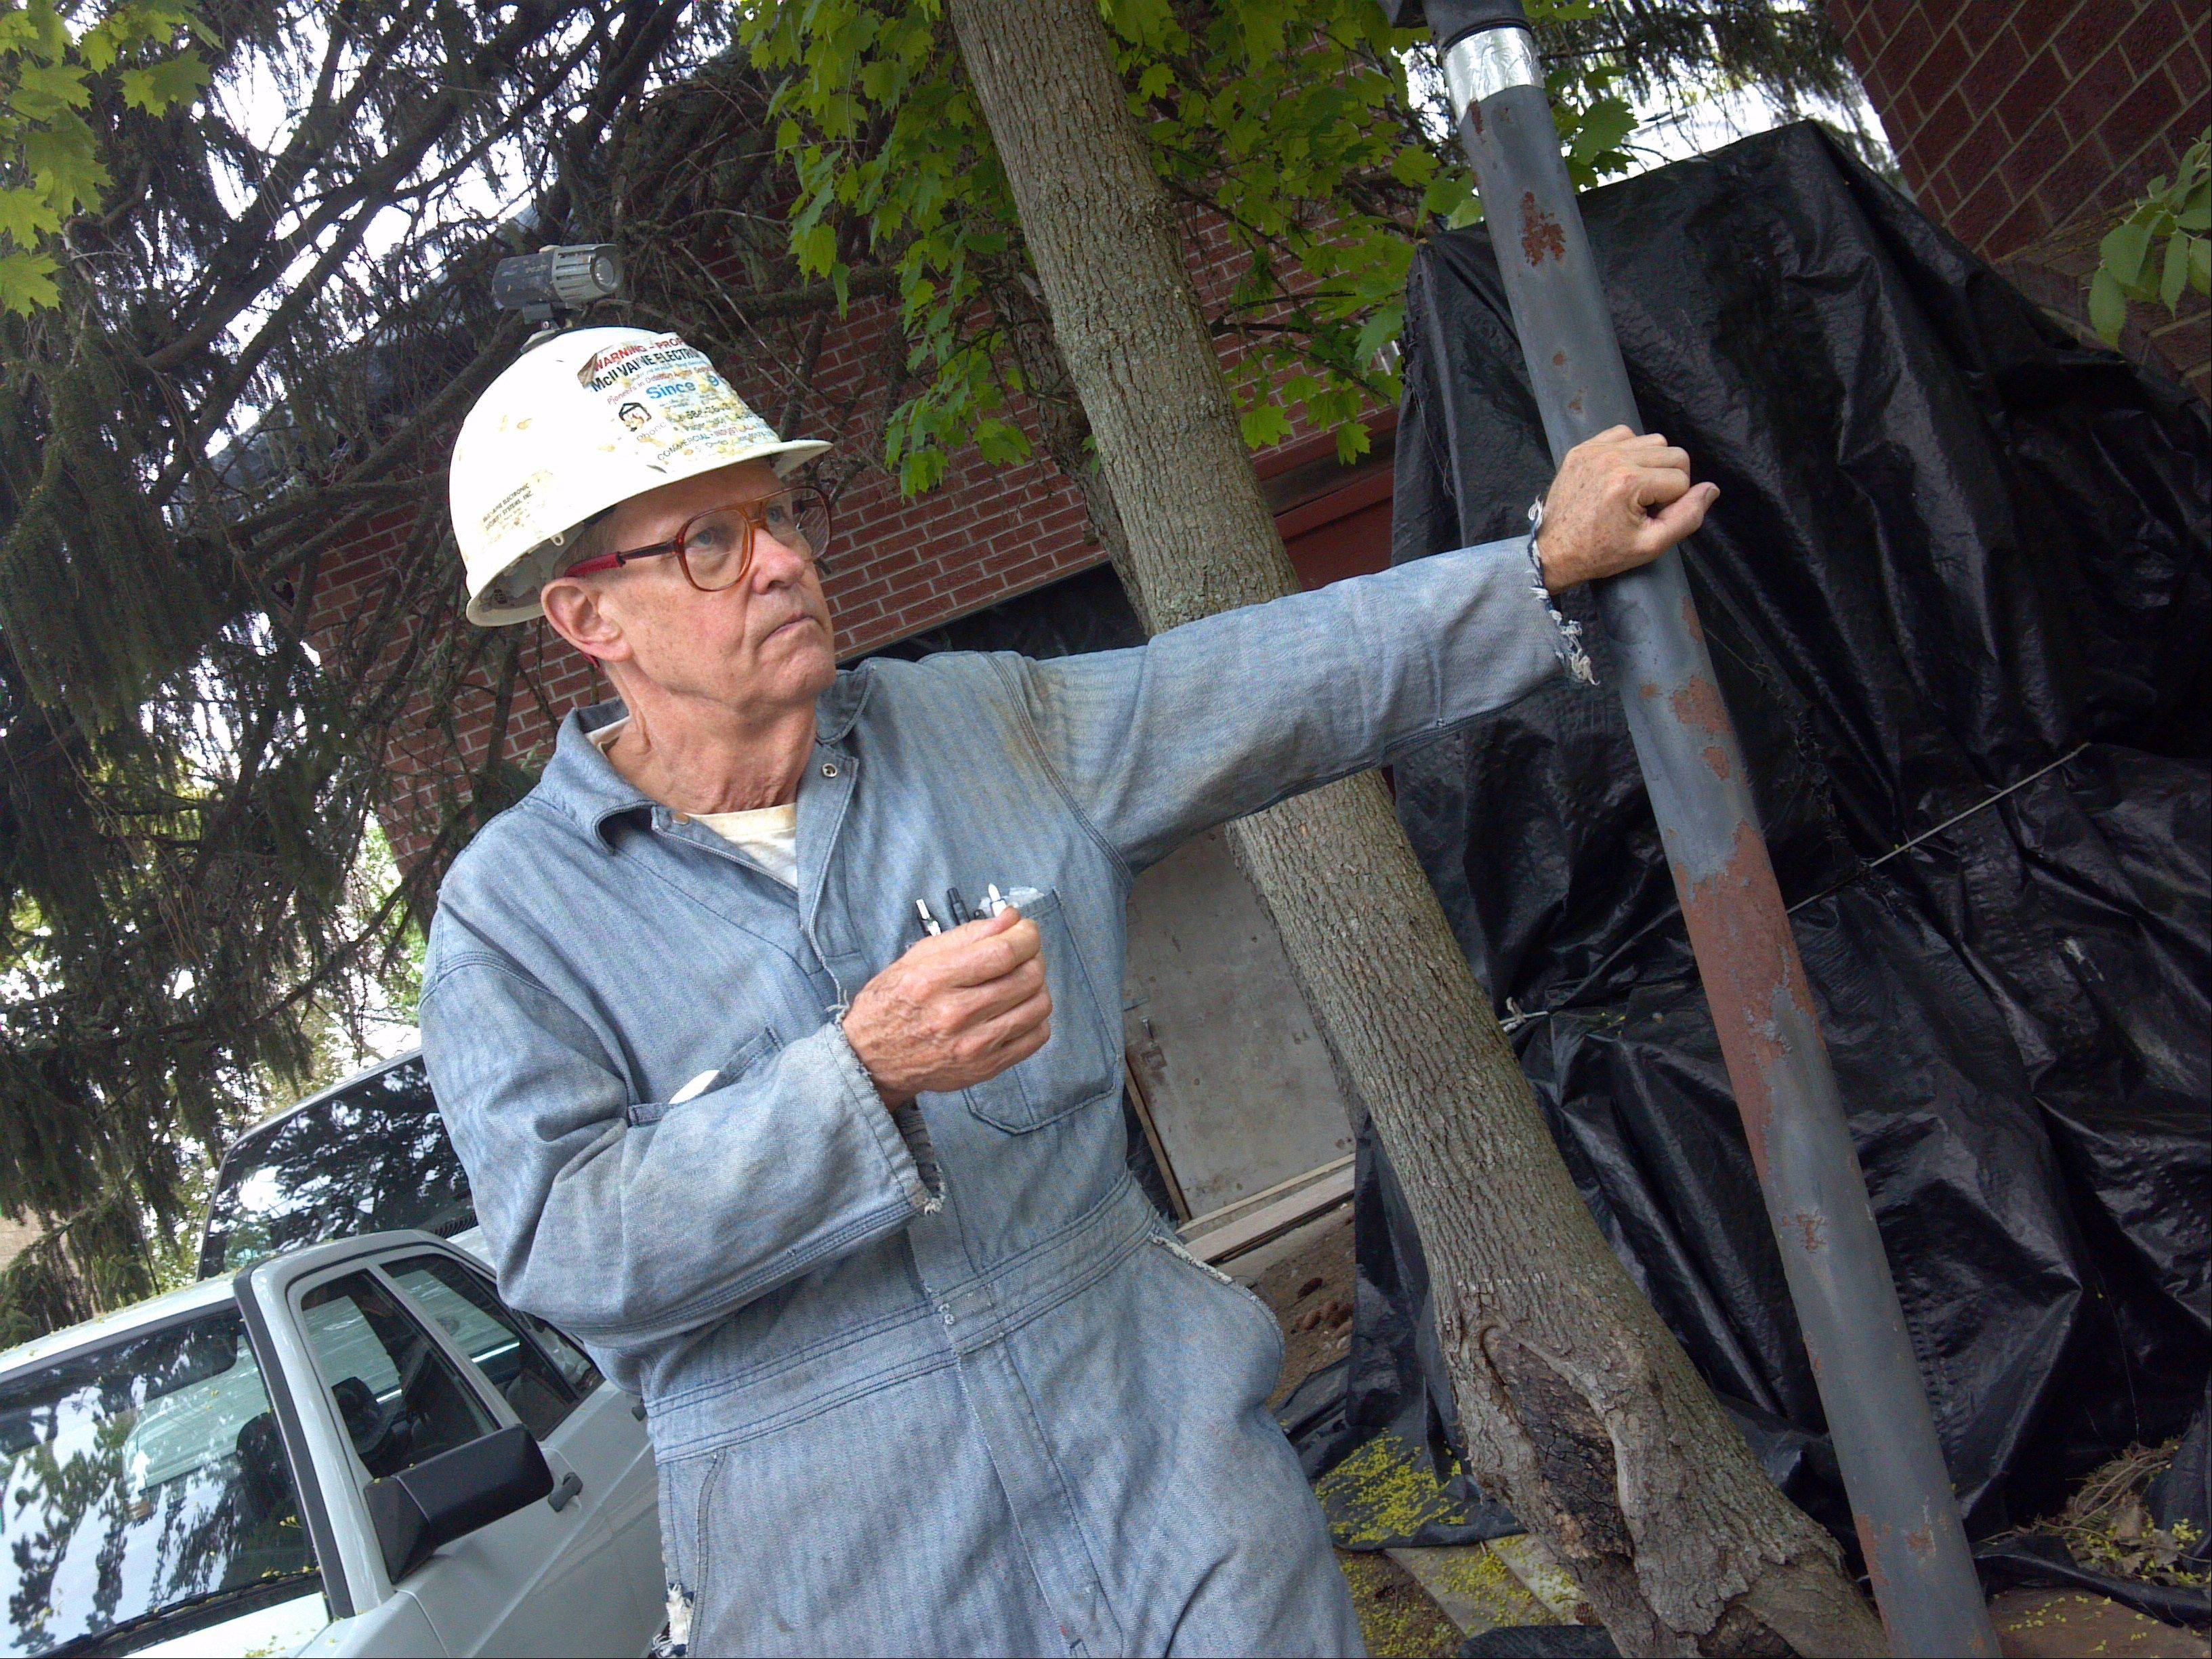 Clifford McIlvaine, a St. Charles homeowner under fire for a long-running construction project, talks Thursday outside his home on the 600 block of Prairie Street. A judge last week gave the city permission to make repairs and send McIlvaine the bill.